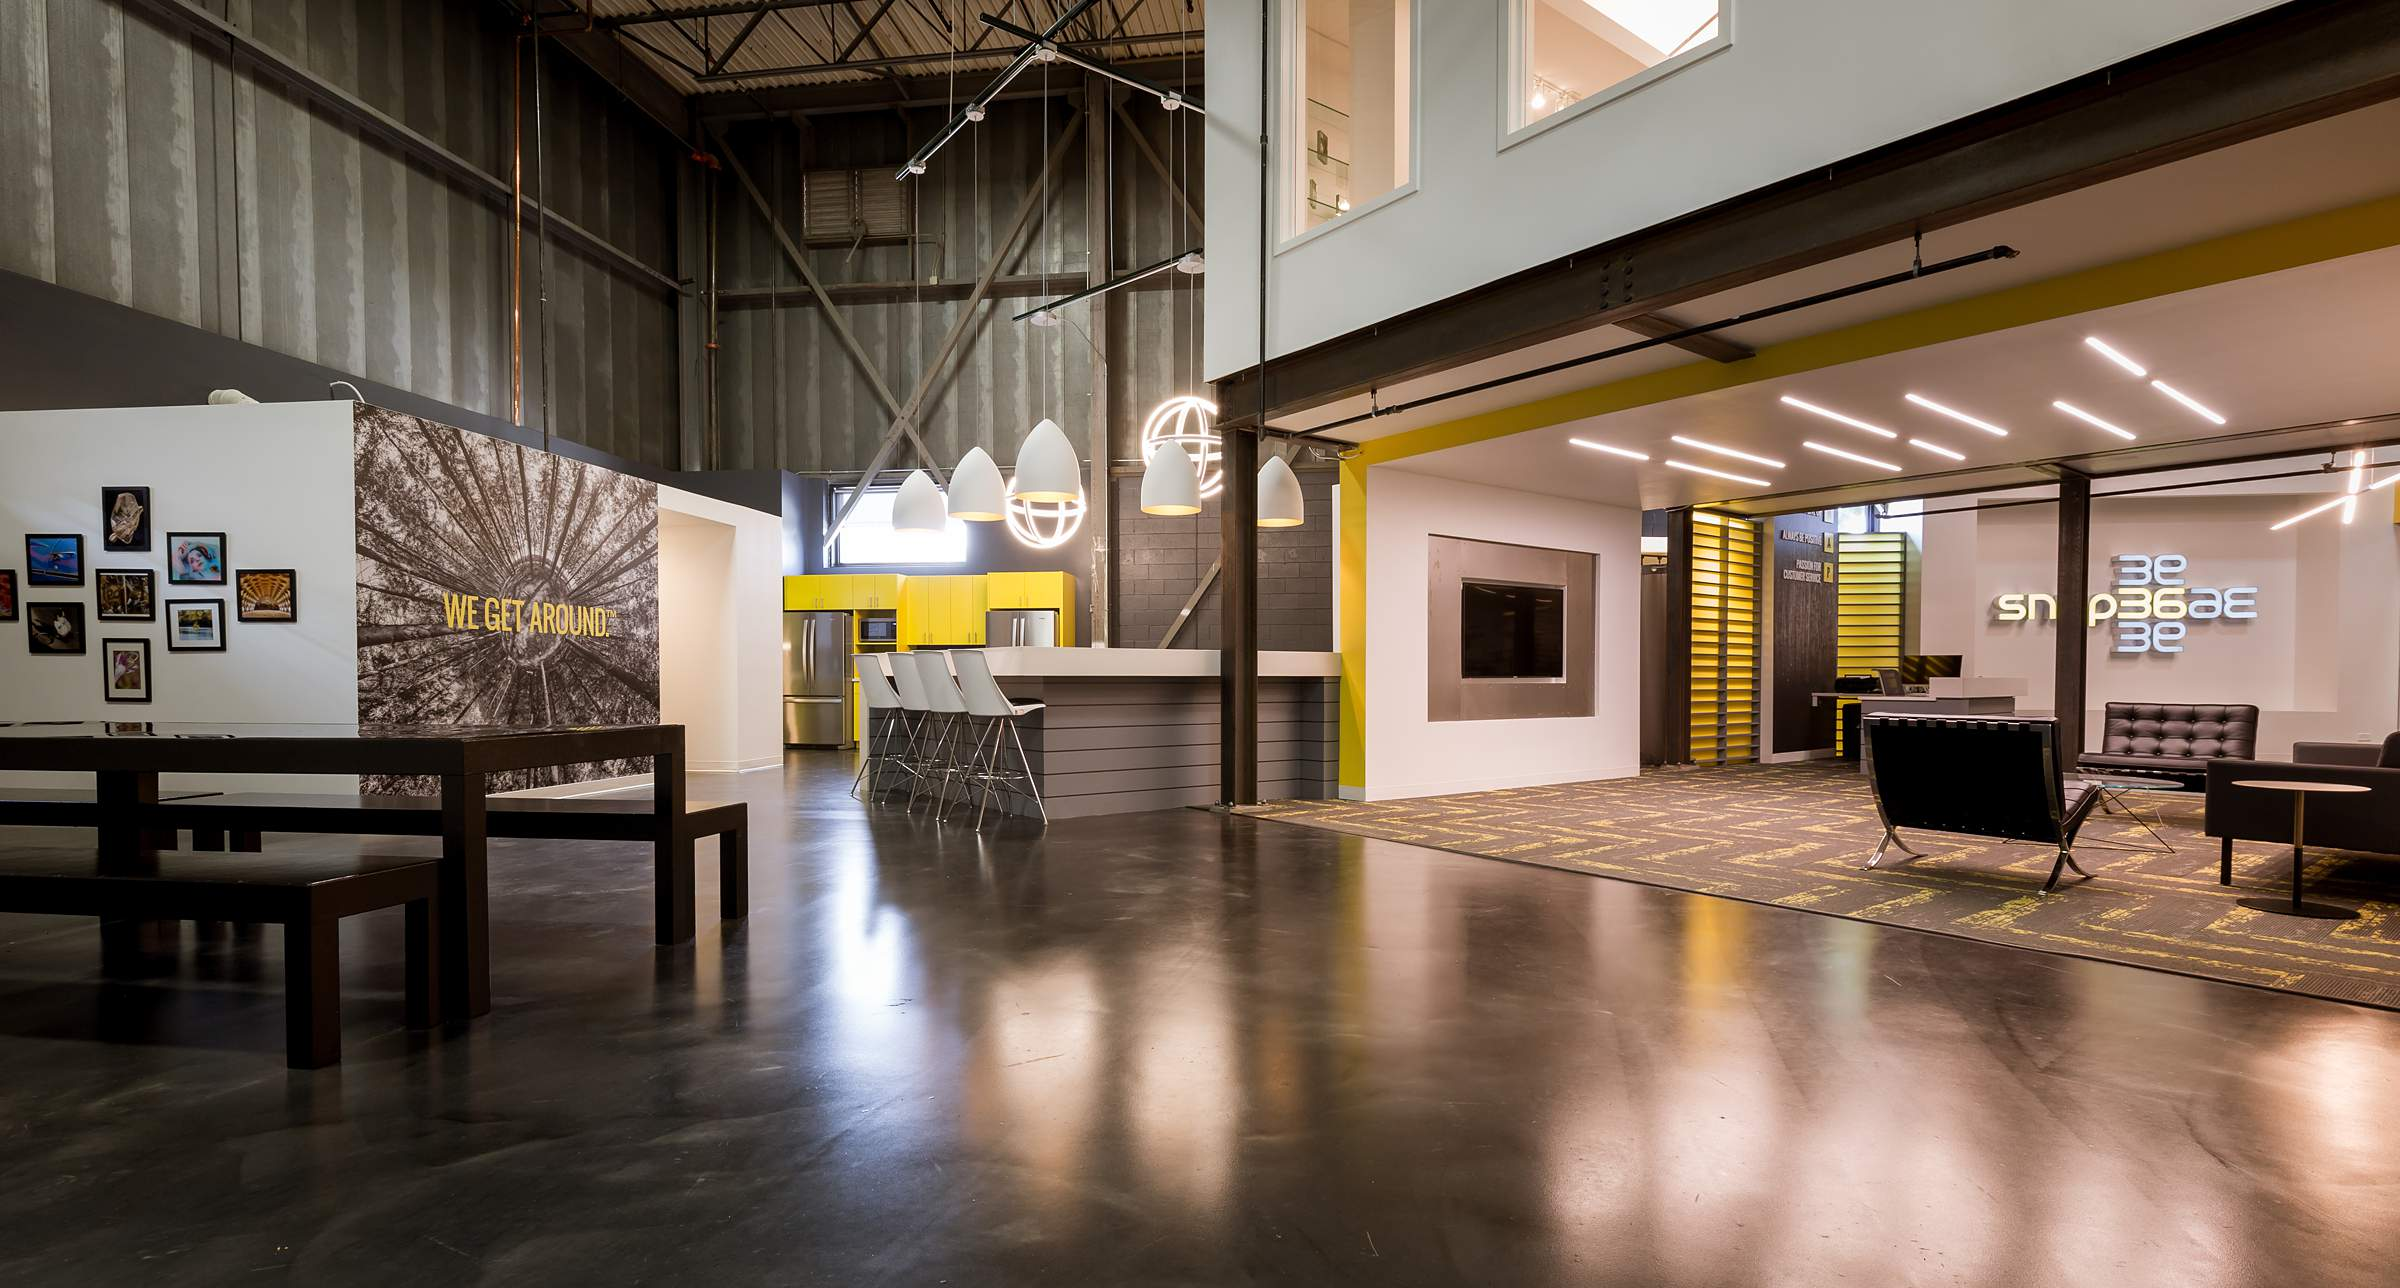 Awesome Industrial Photo Studio - Snap36 Chicago Virtual Tour